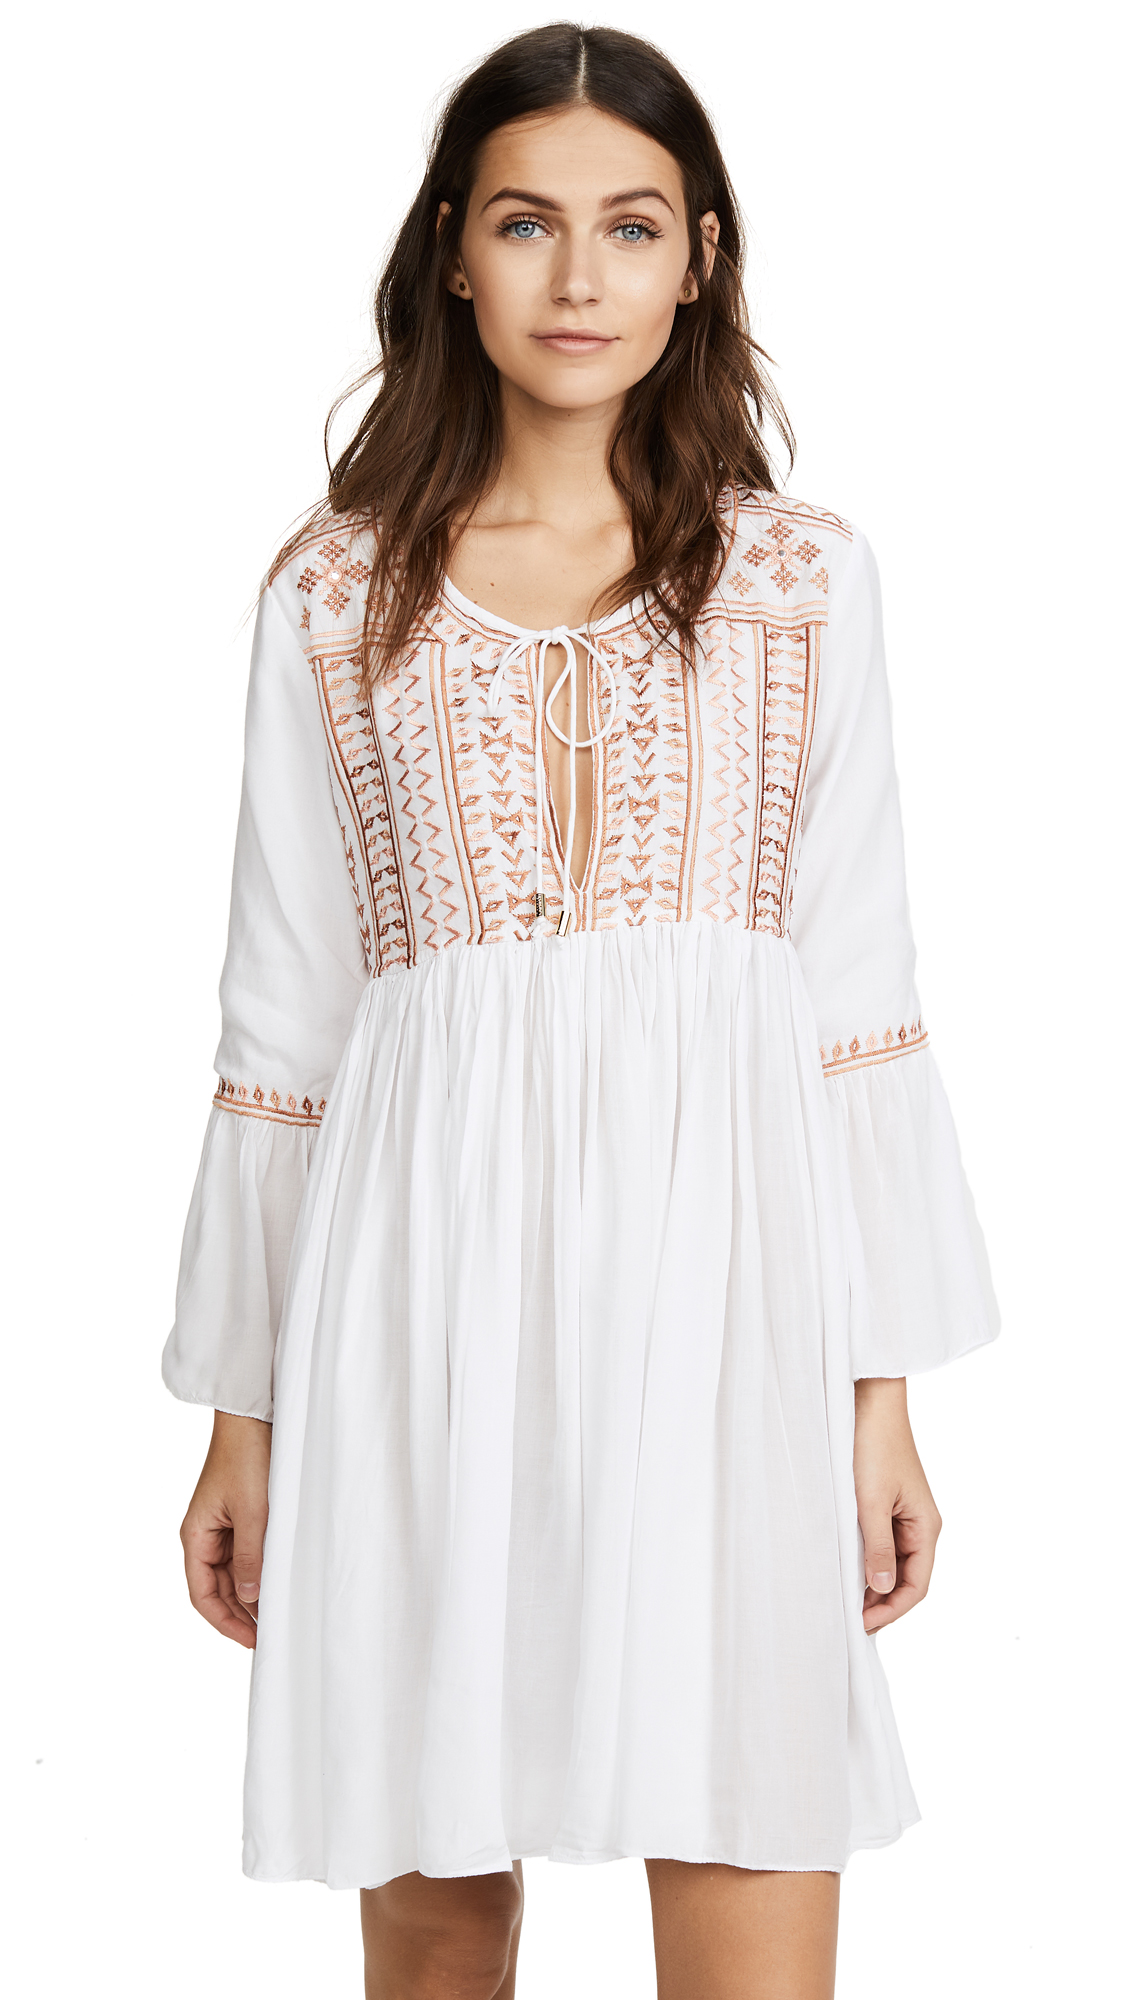 Melissa Odabash Natalia Dress - Cream Beige